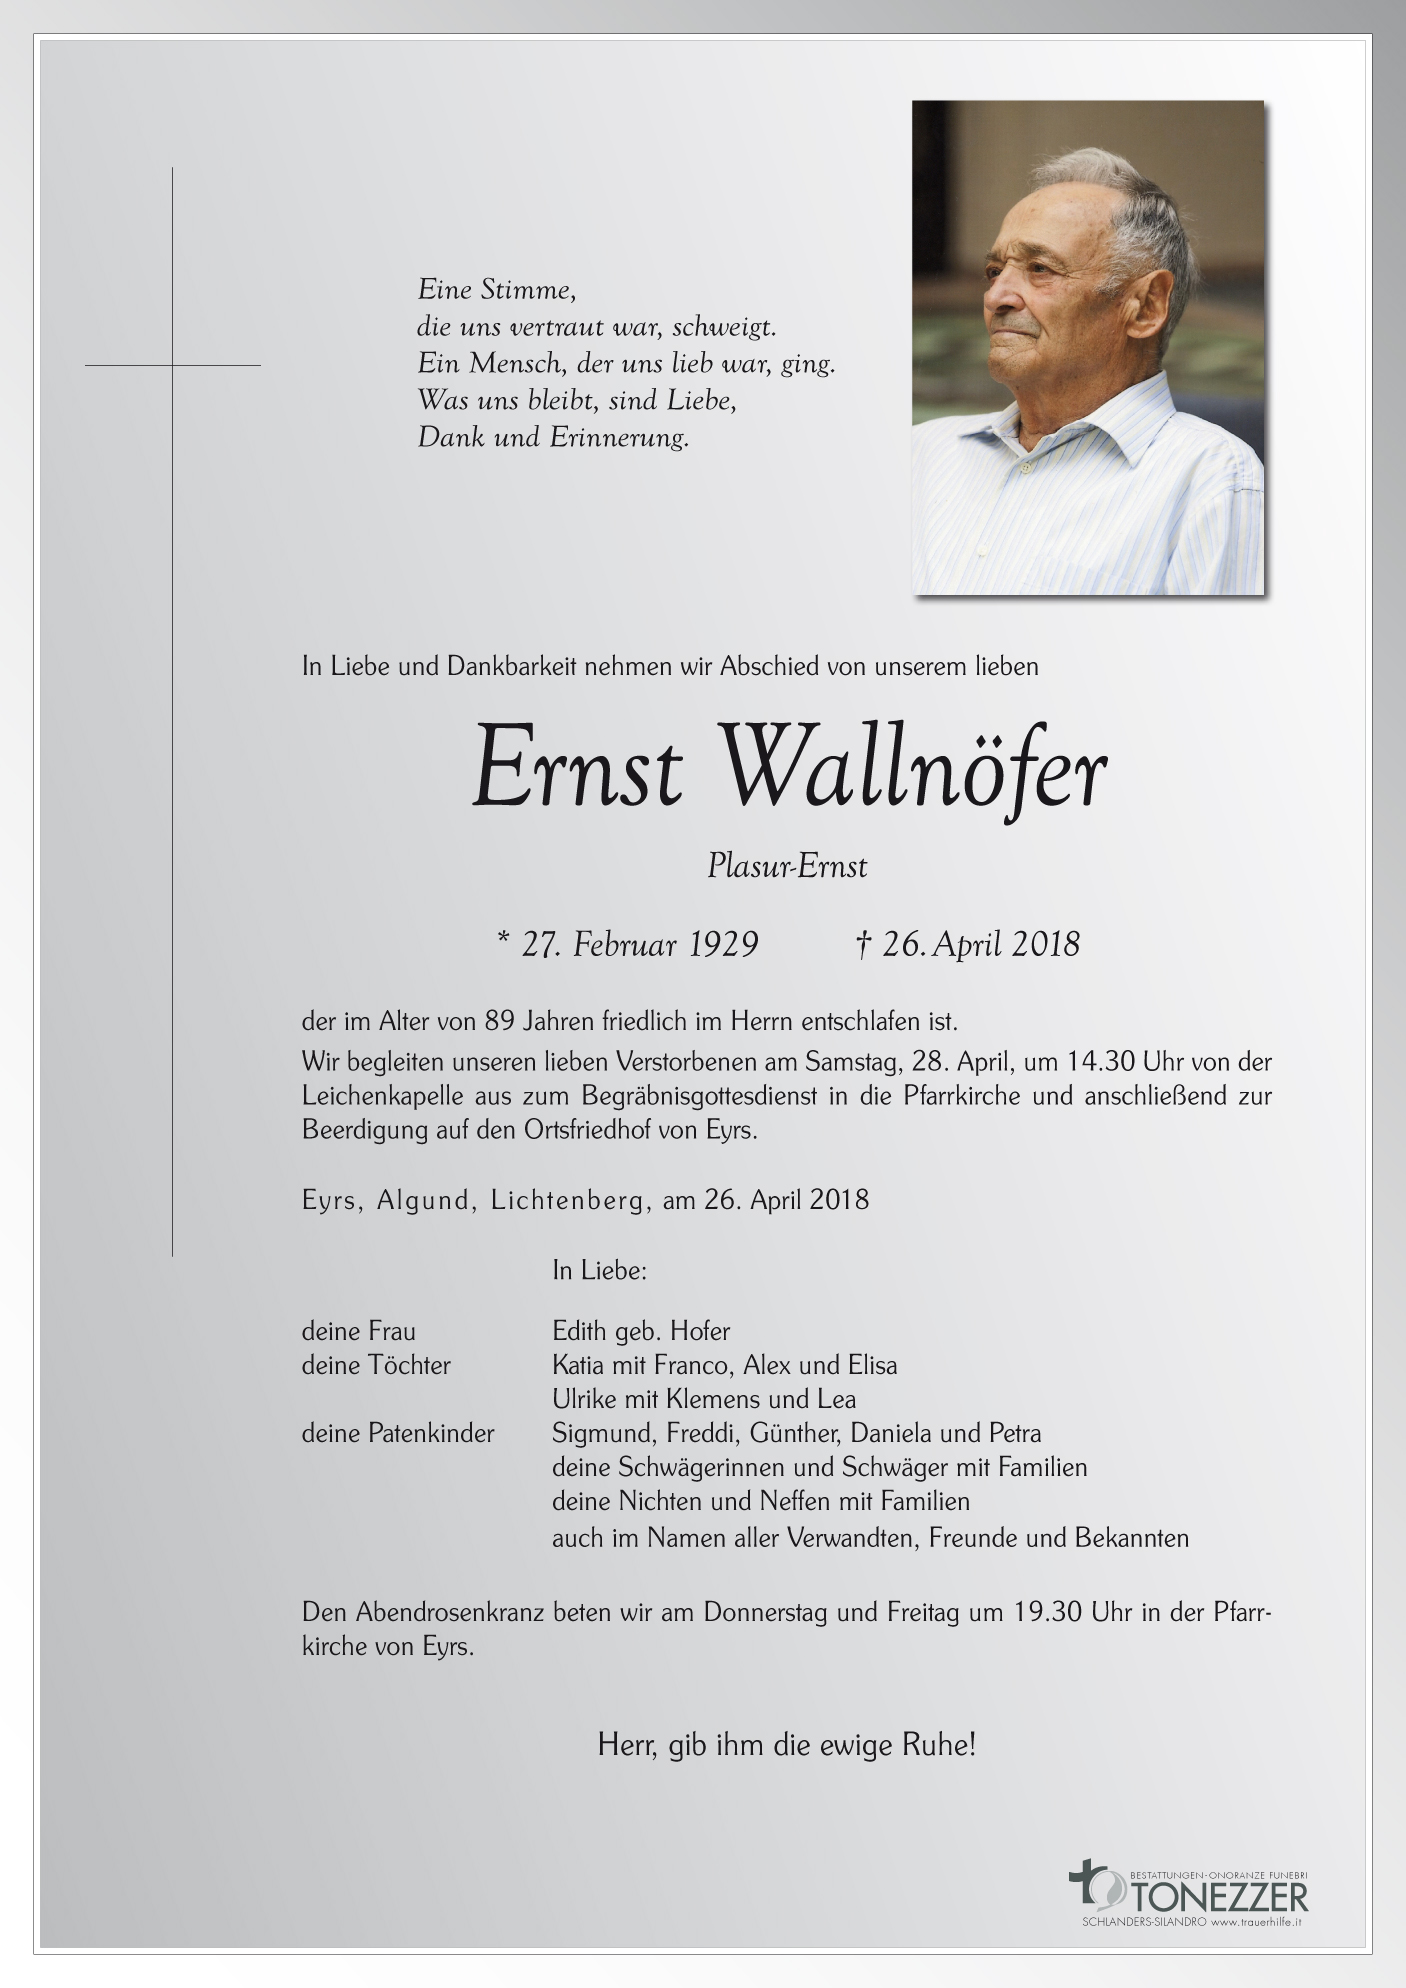 Ernst Wallnöfer